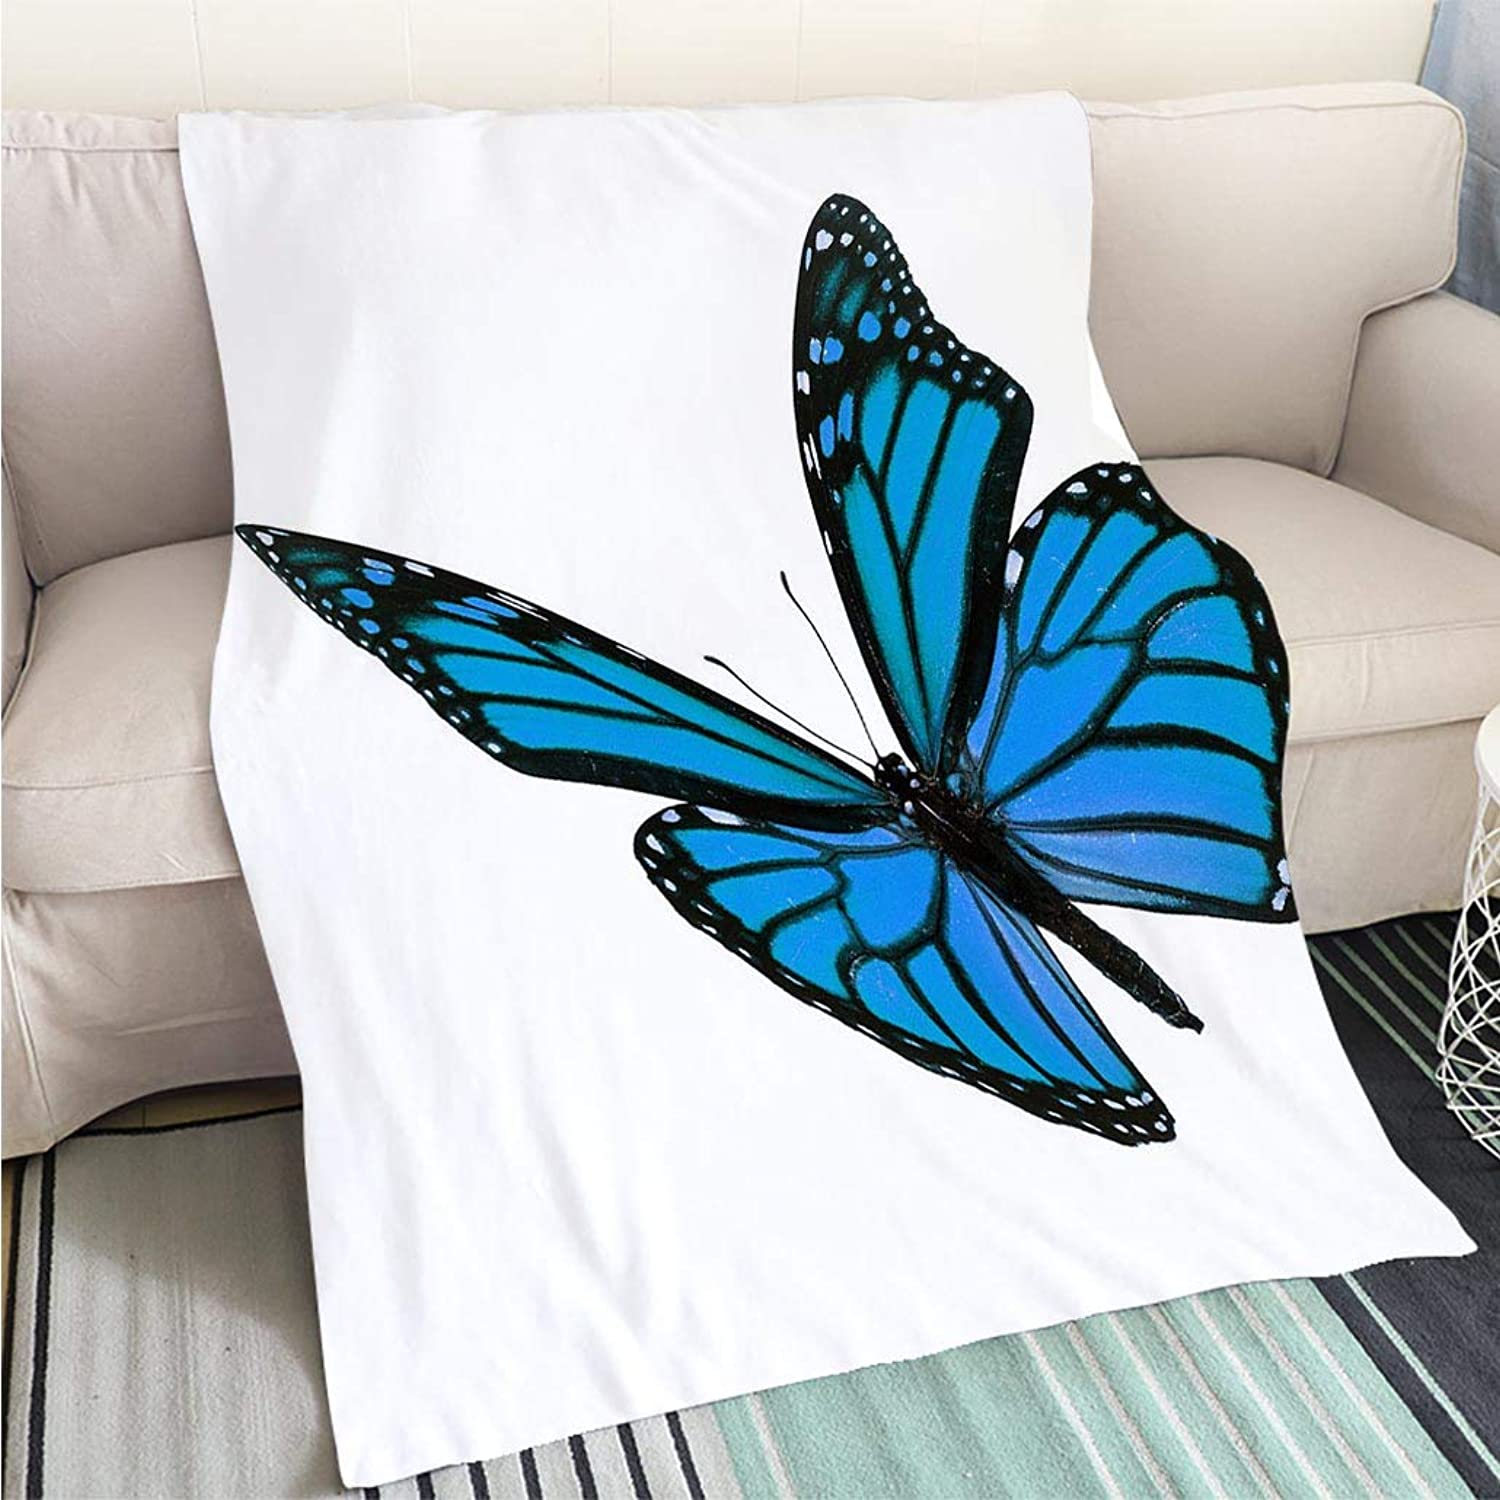 BEICICI Luxury Super Soft Blanket Beautiful bluee Monarch Butterfly Sofa Bed or Bed 3D Printing Cool Quilt